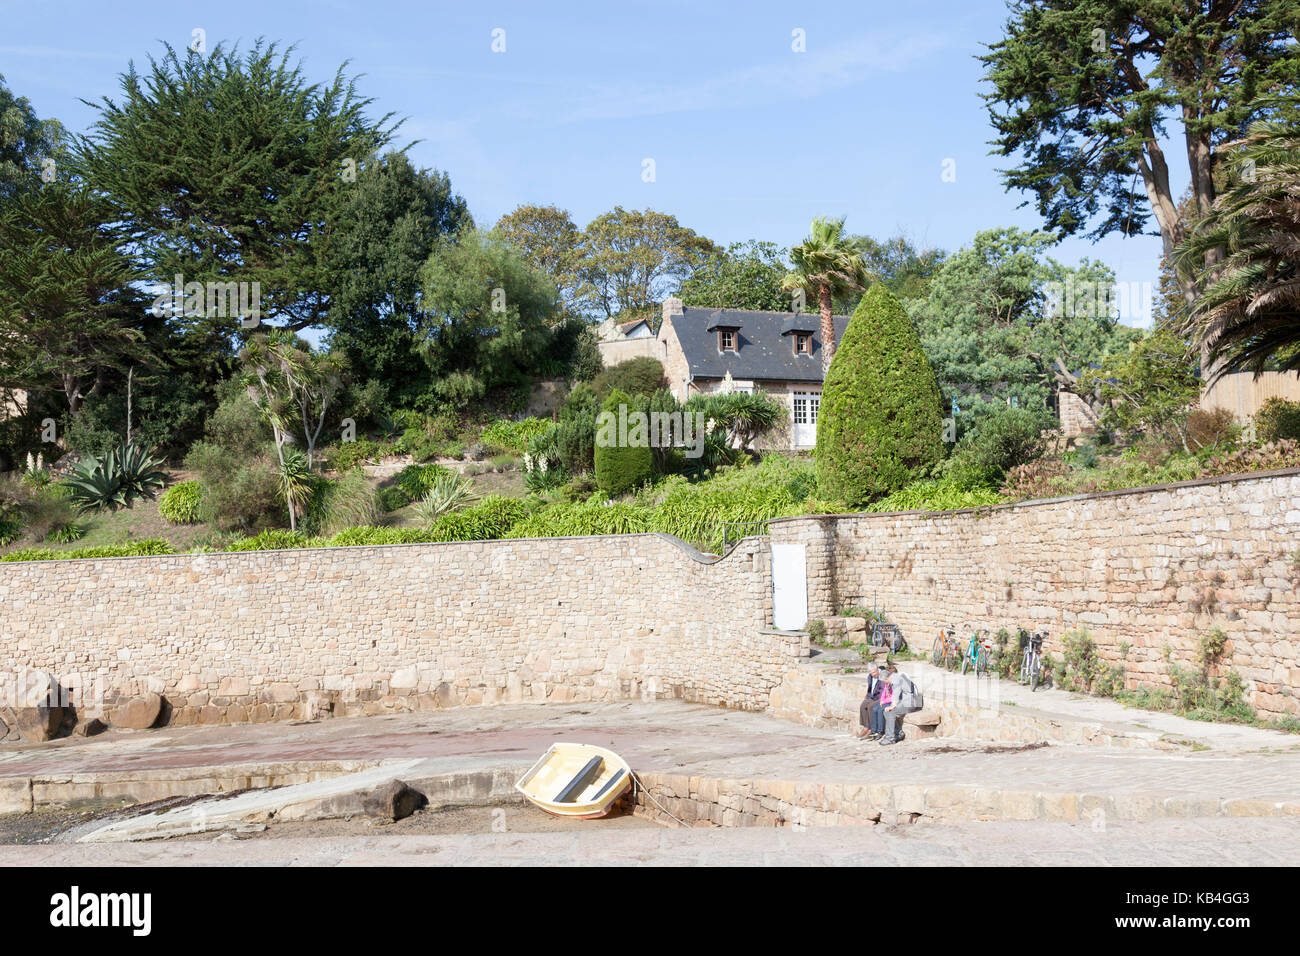 Port Clos at low tide, in the South of the Brehat island (Brittany- France). A well landscaped  character property - Stock Image